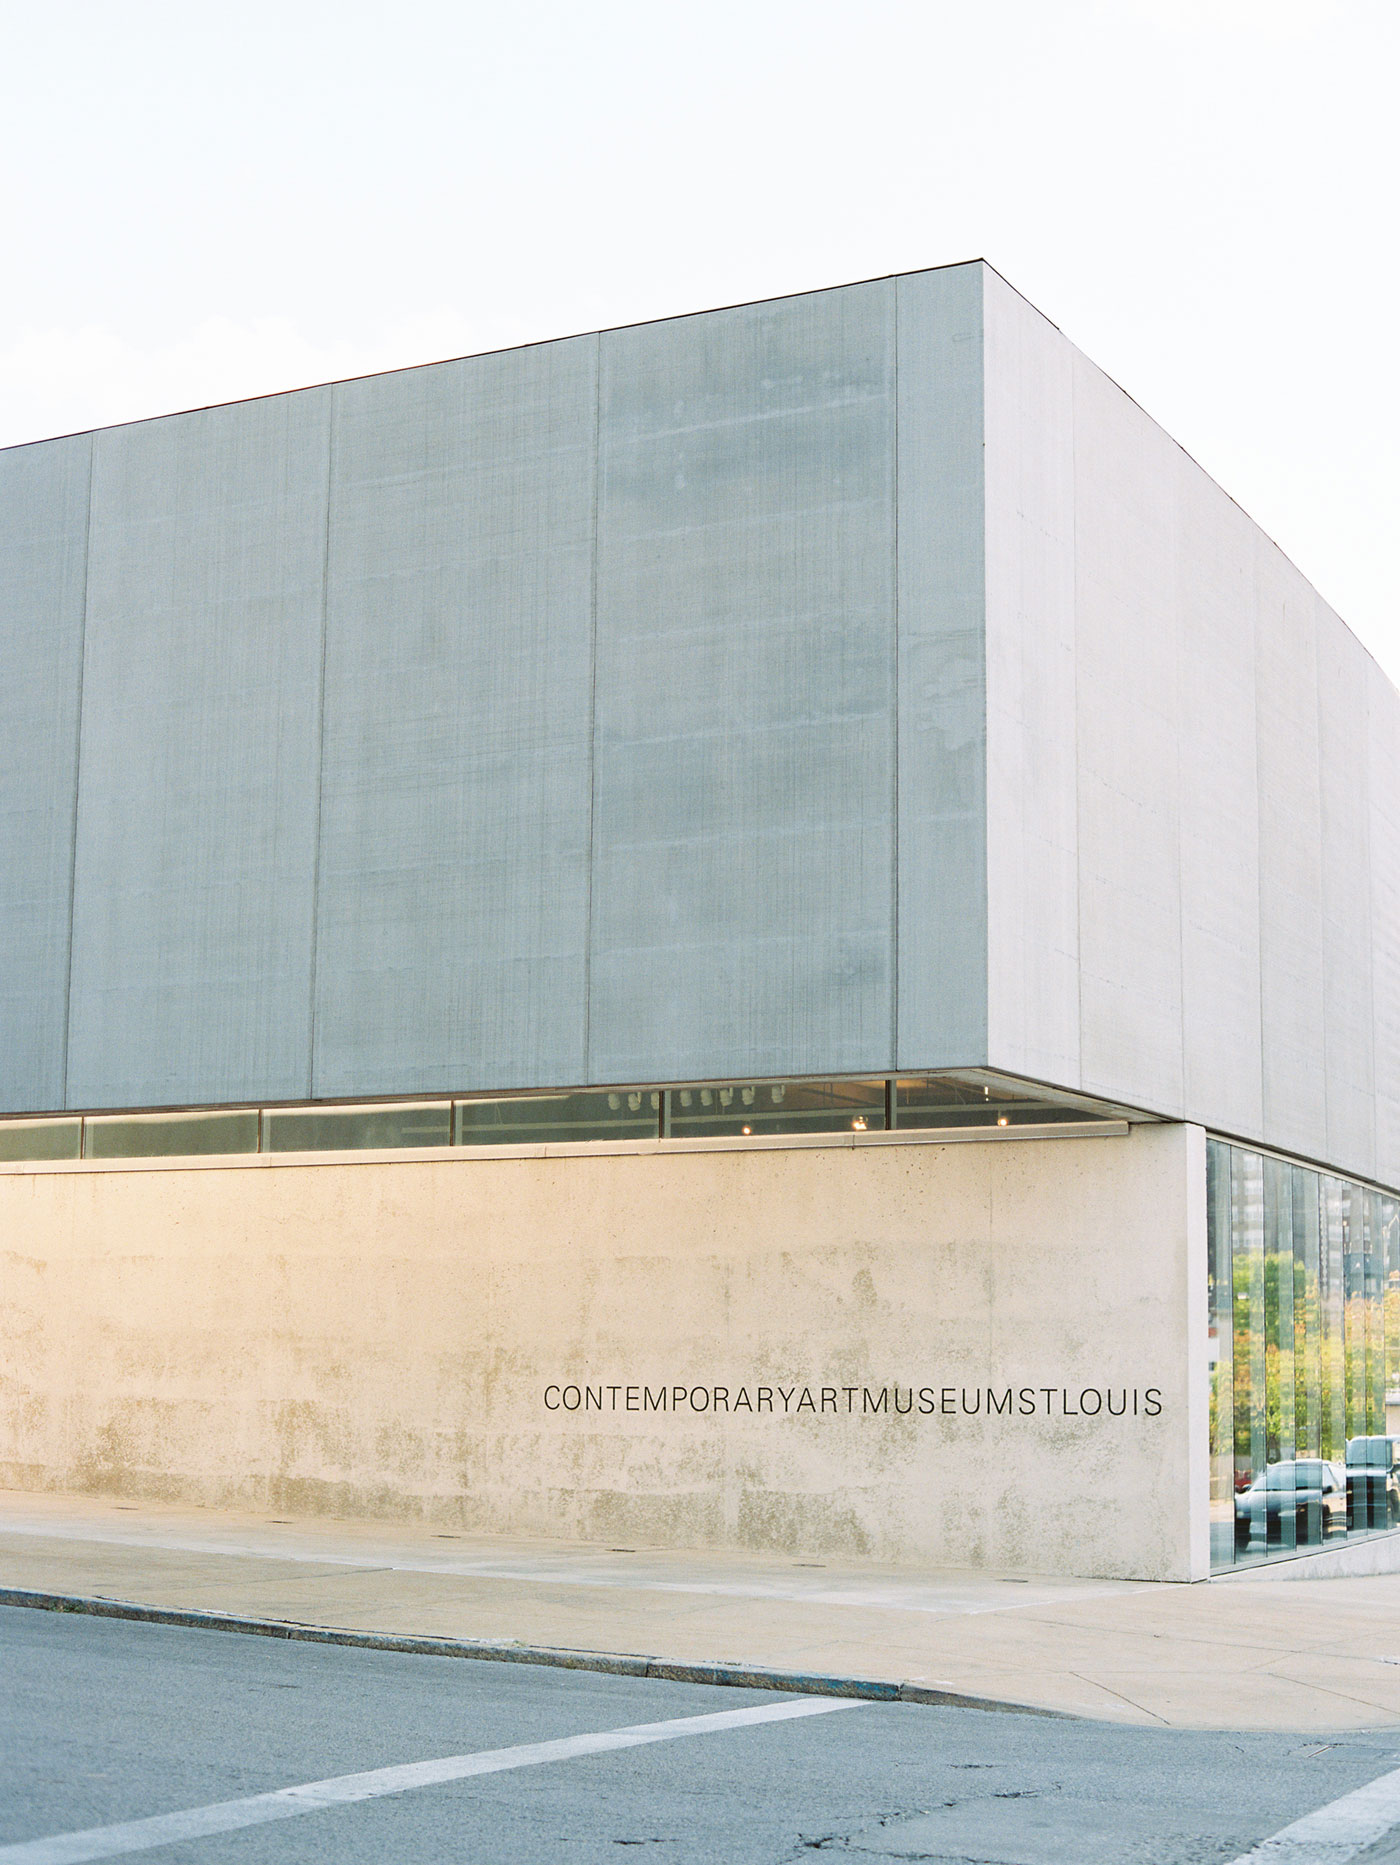 st. louis contemporary art museum